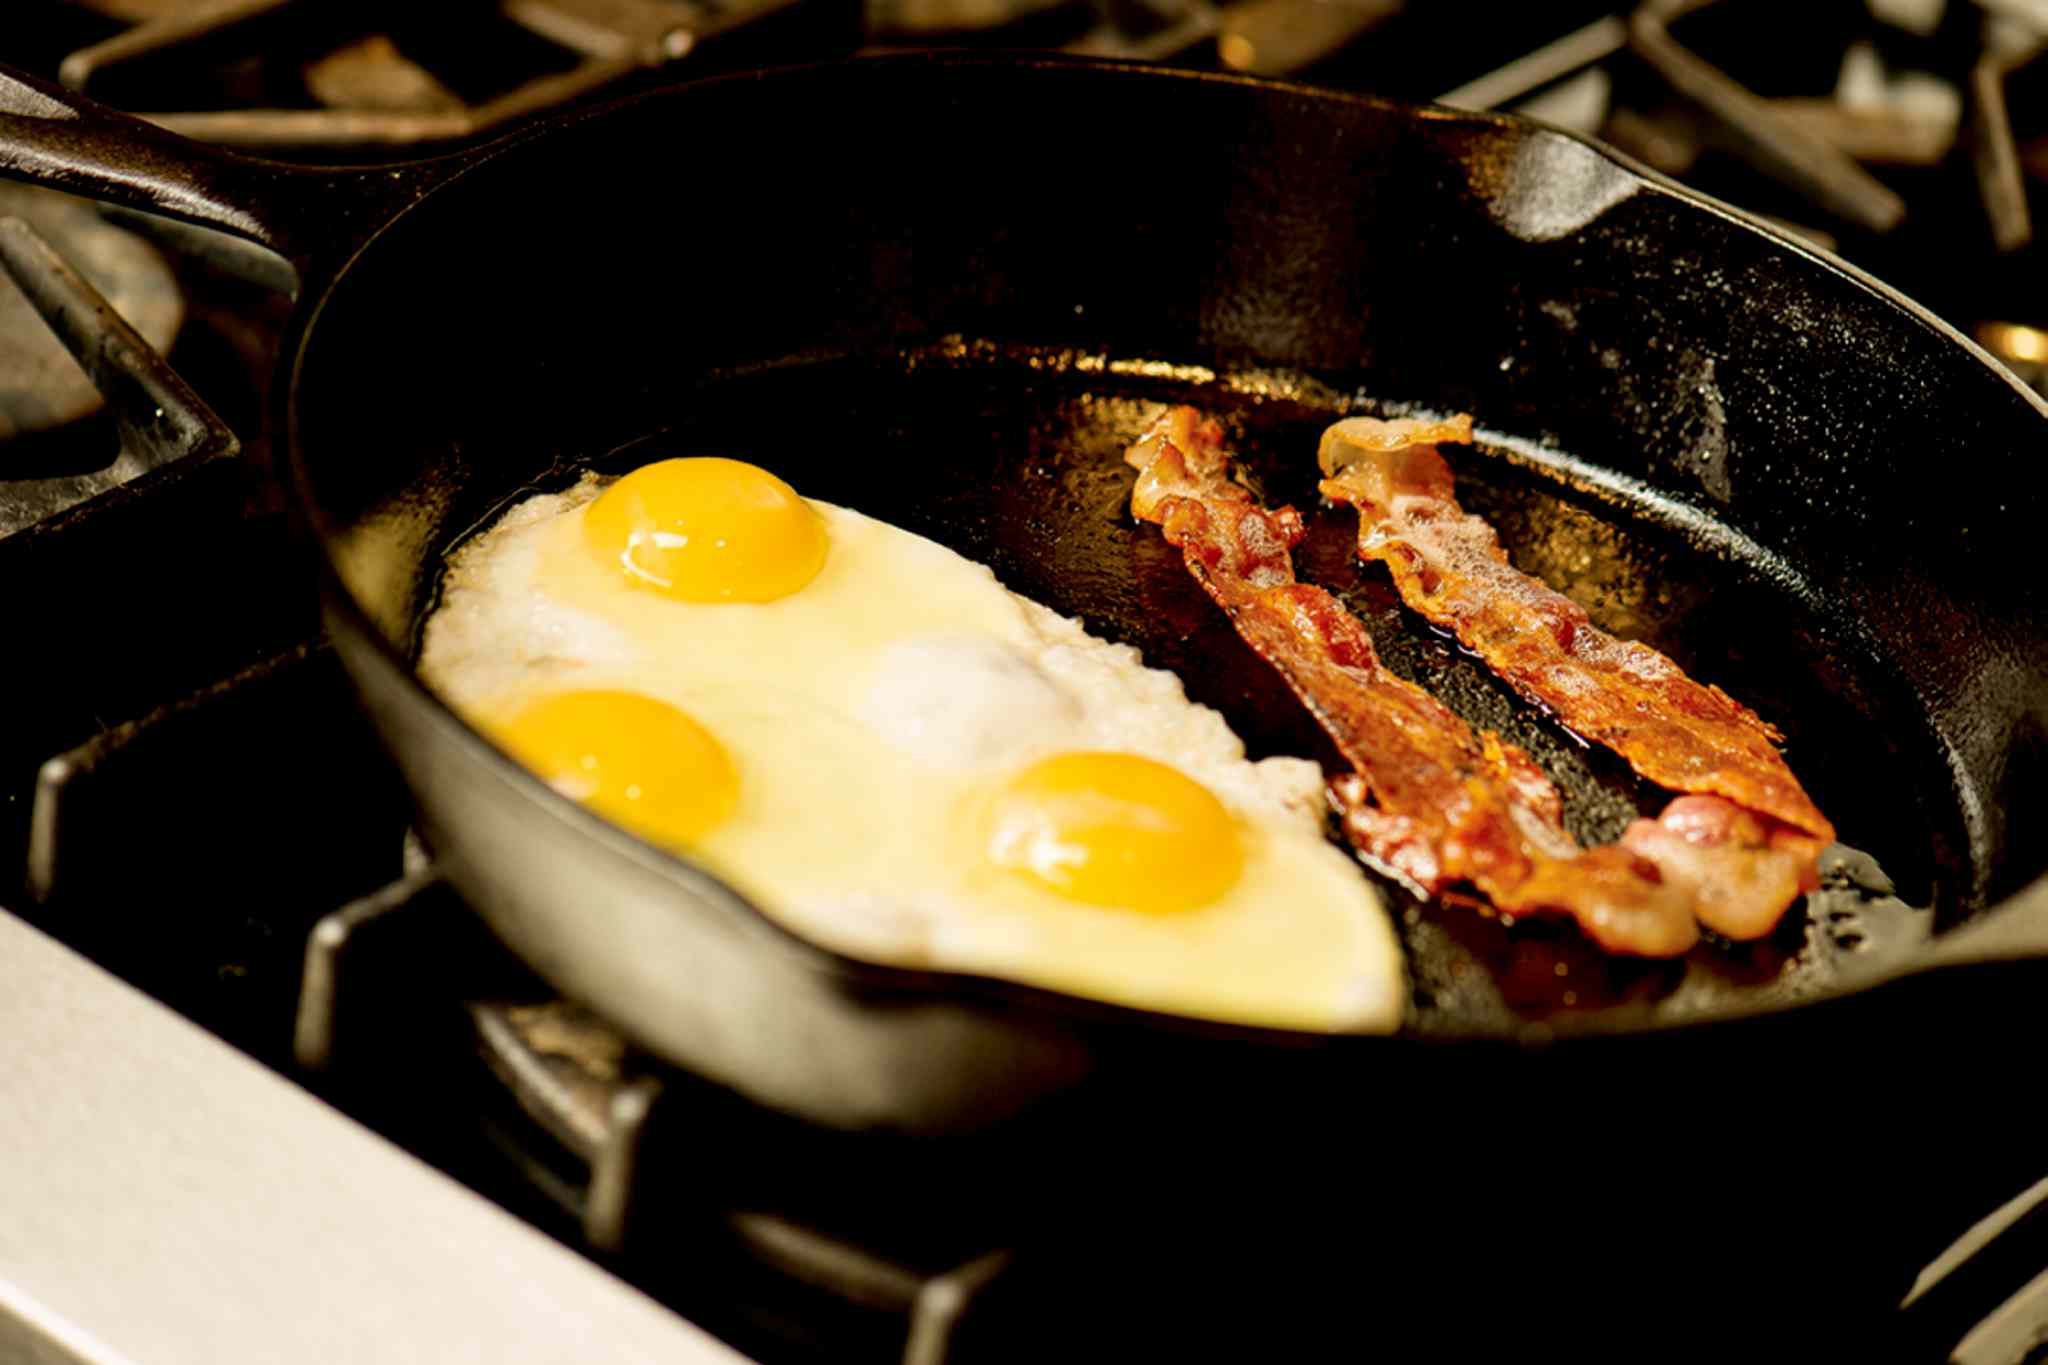 To get stubborn grease out of an old cast iron frying pan, try washing with dish soap and water, and wiping the inside and outside with some vegetable oil and a paper towel.